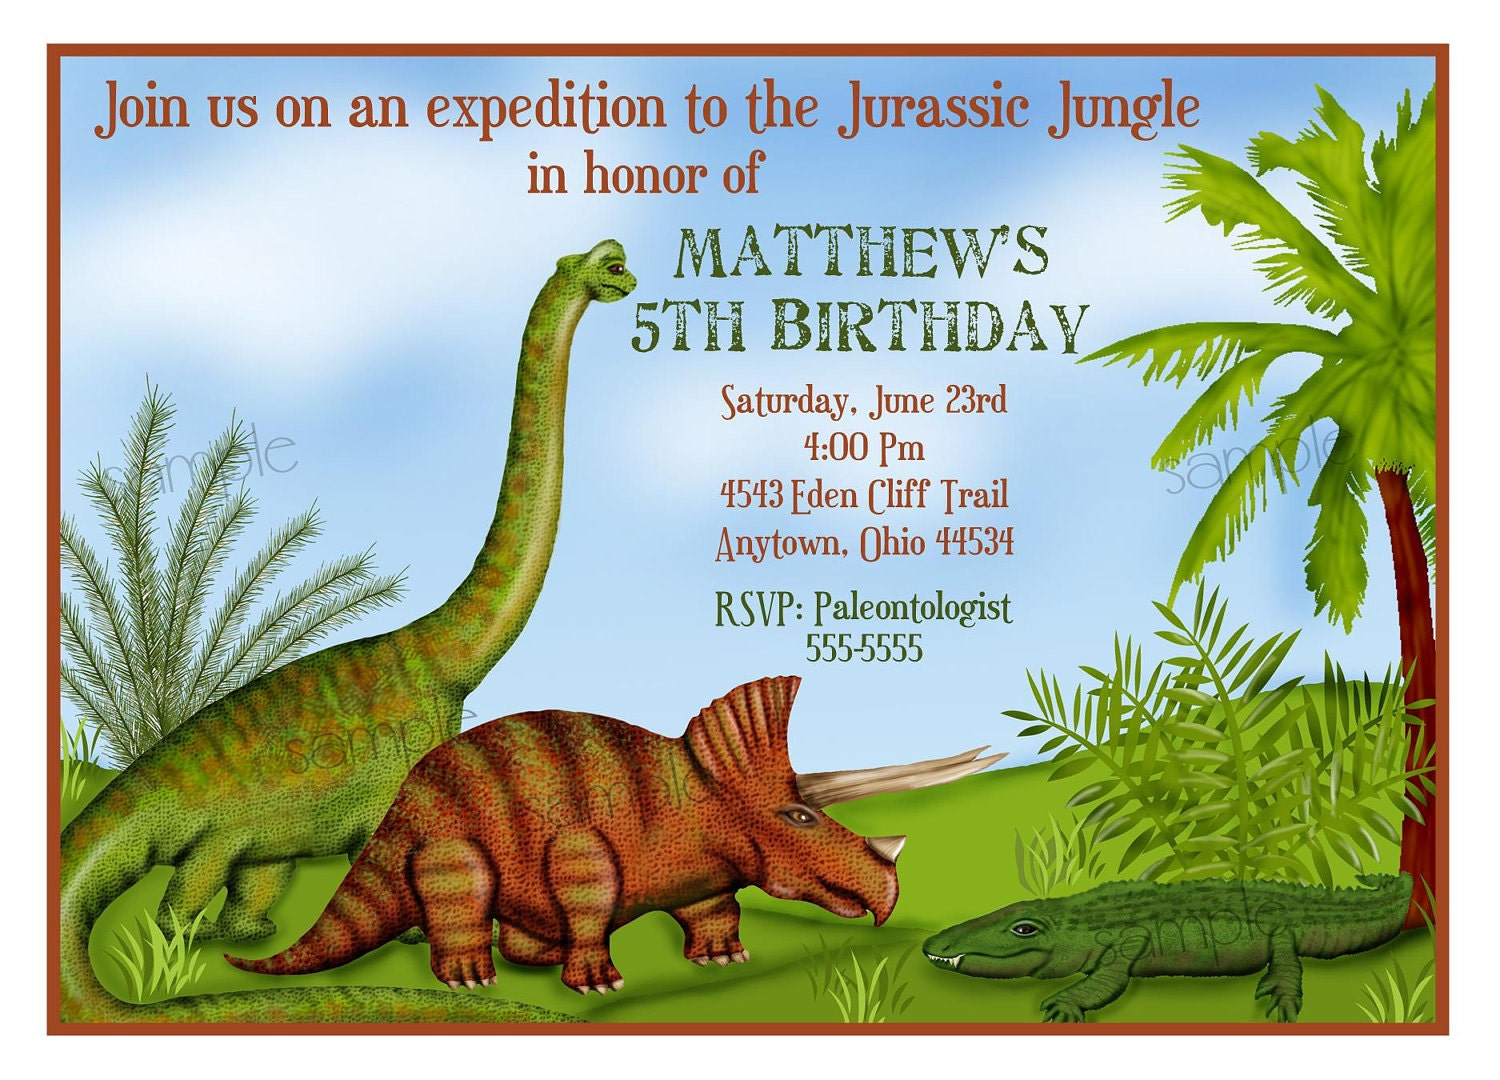 Dinosaur Party Invitation Wording two year old boy halloween costume – Dinosaur Party Invitation Wording